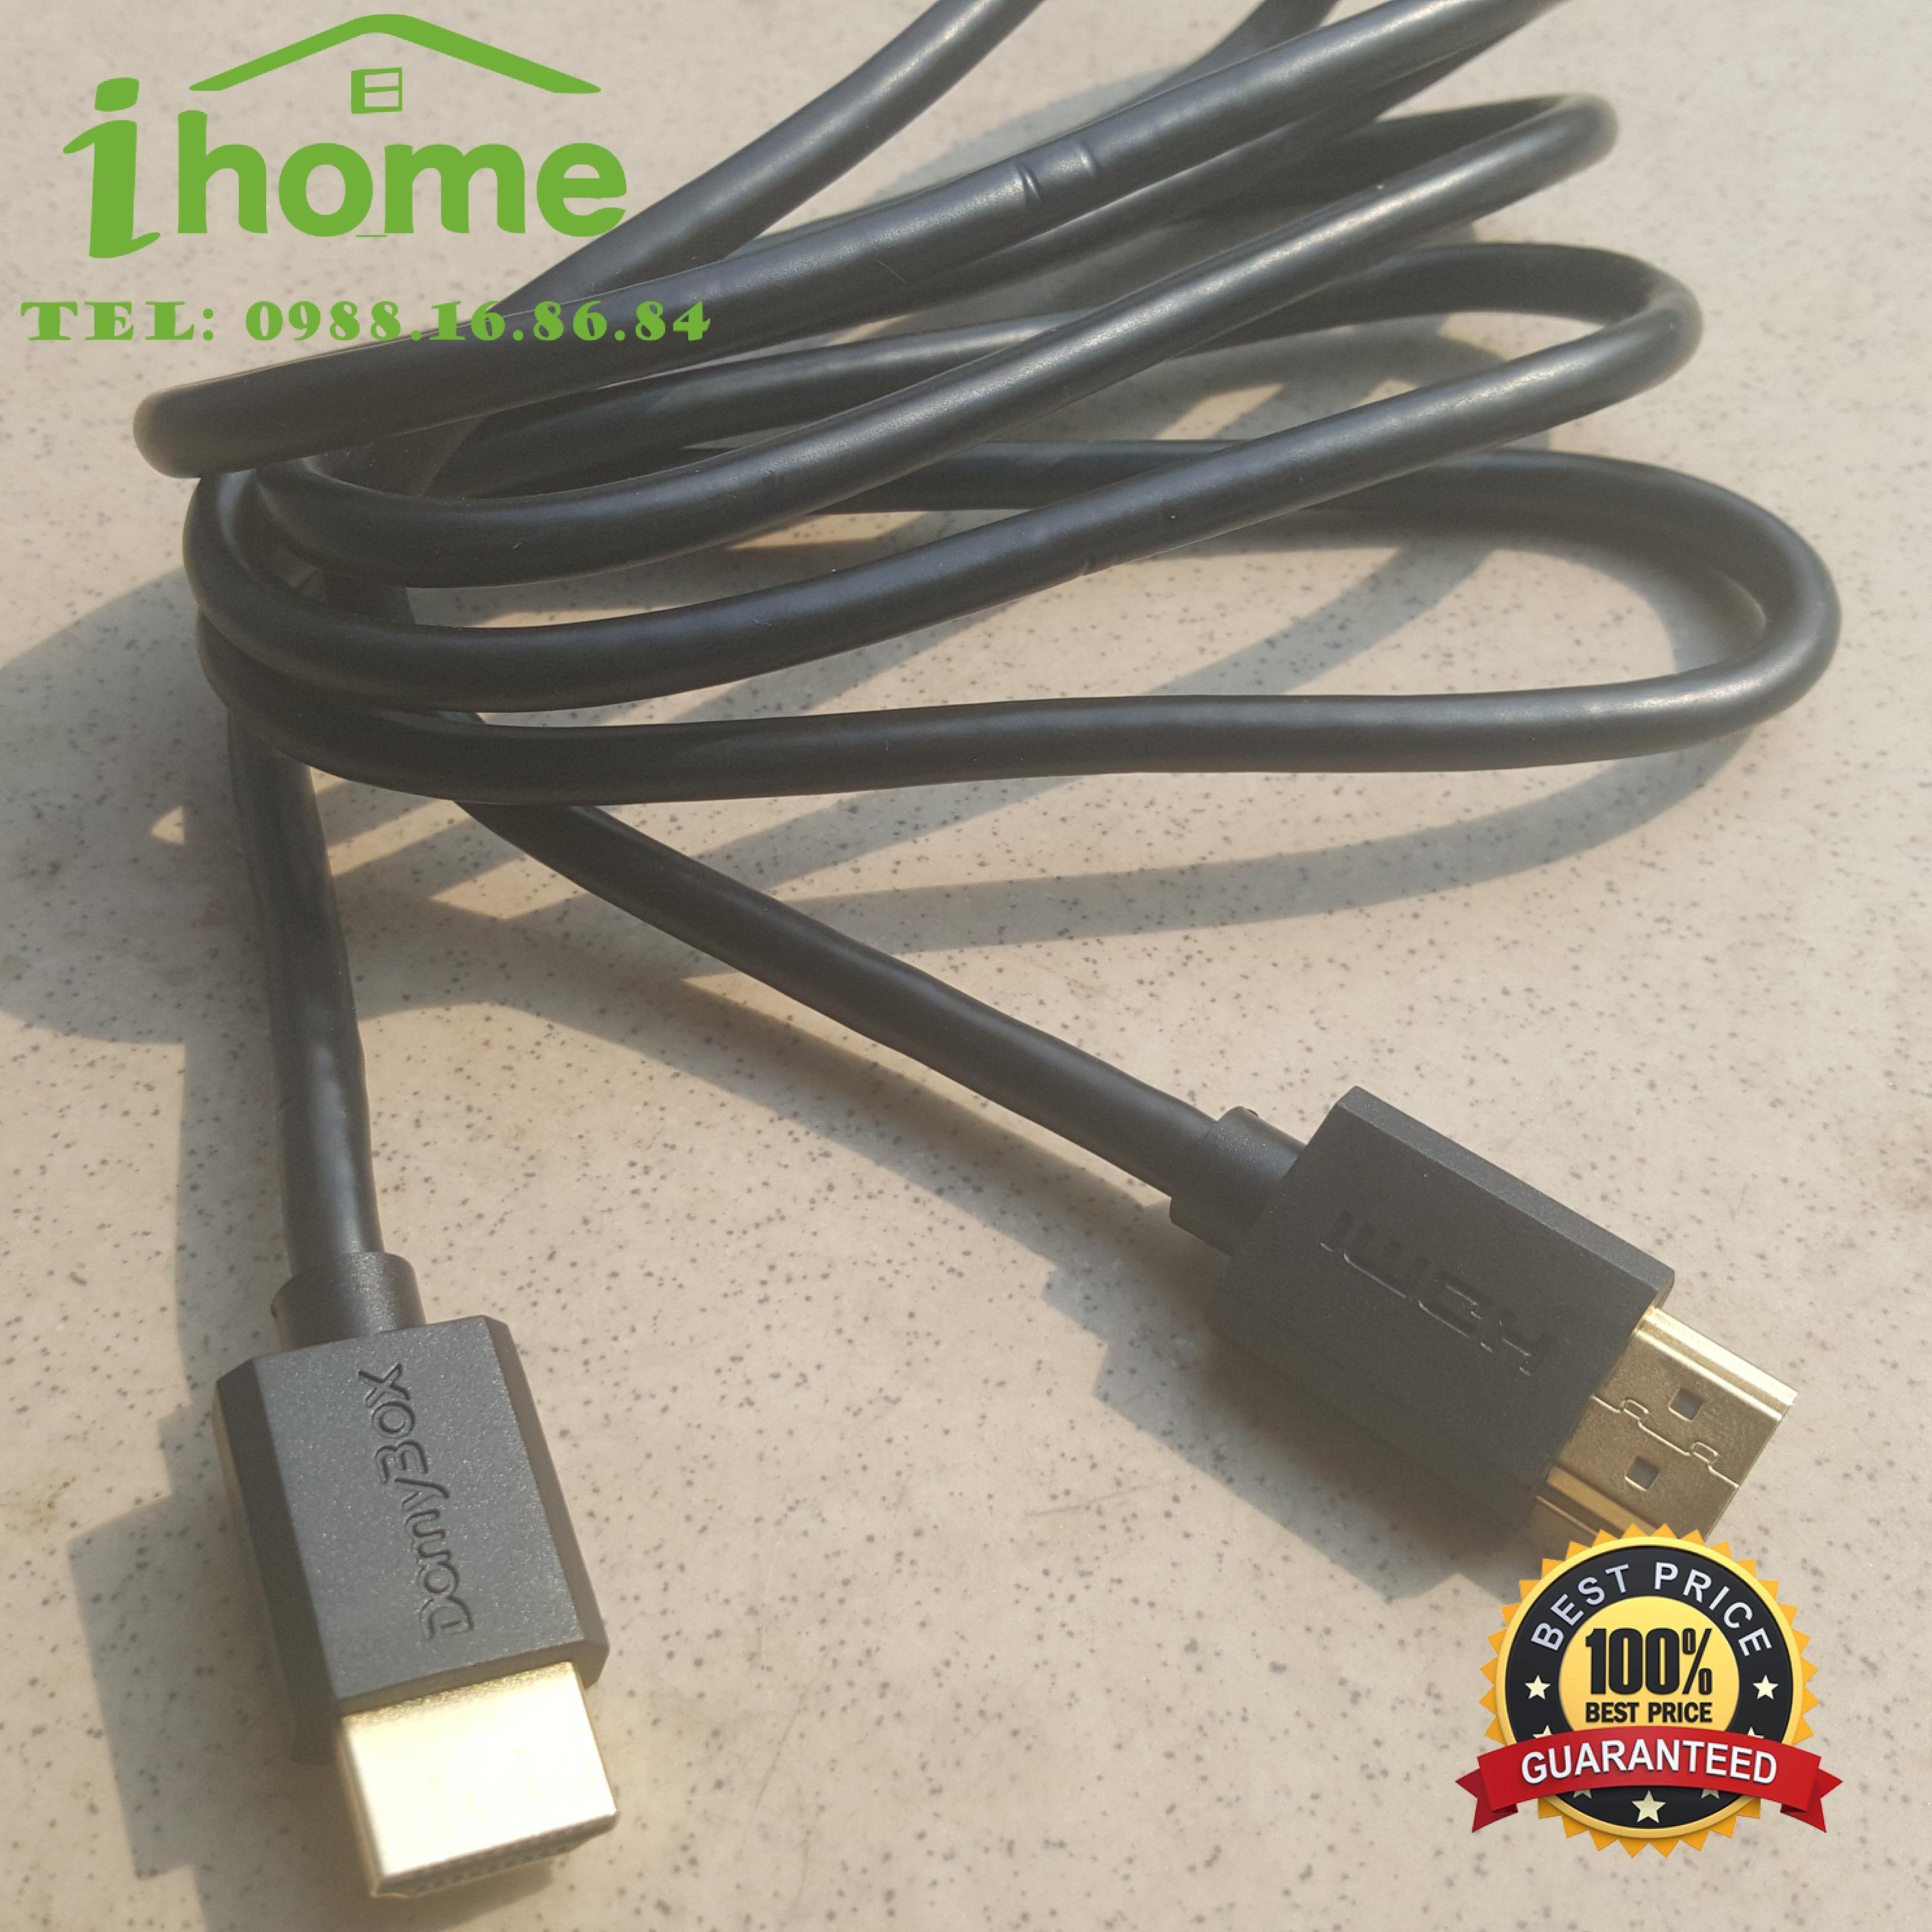 cap-hdmi-cao-cap-1-5-met-ma-vang-24k-ho-tro-3d-2k-4k-hang-thao-may